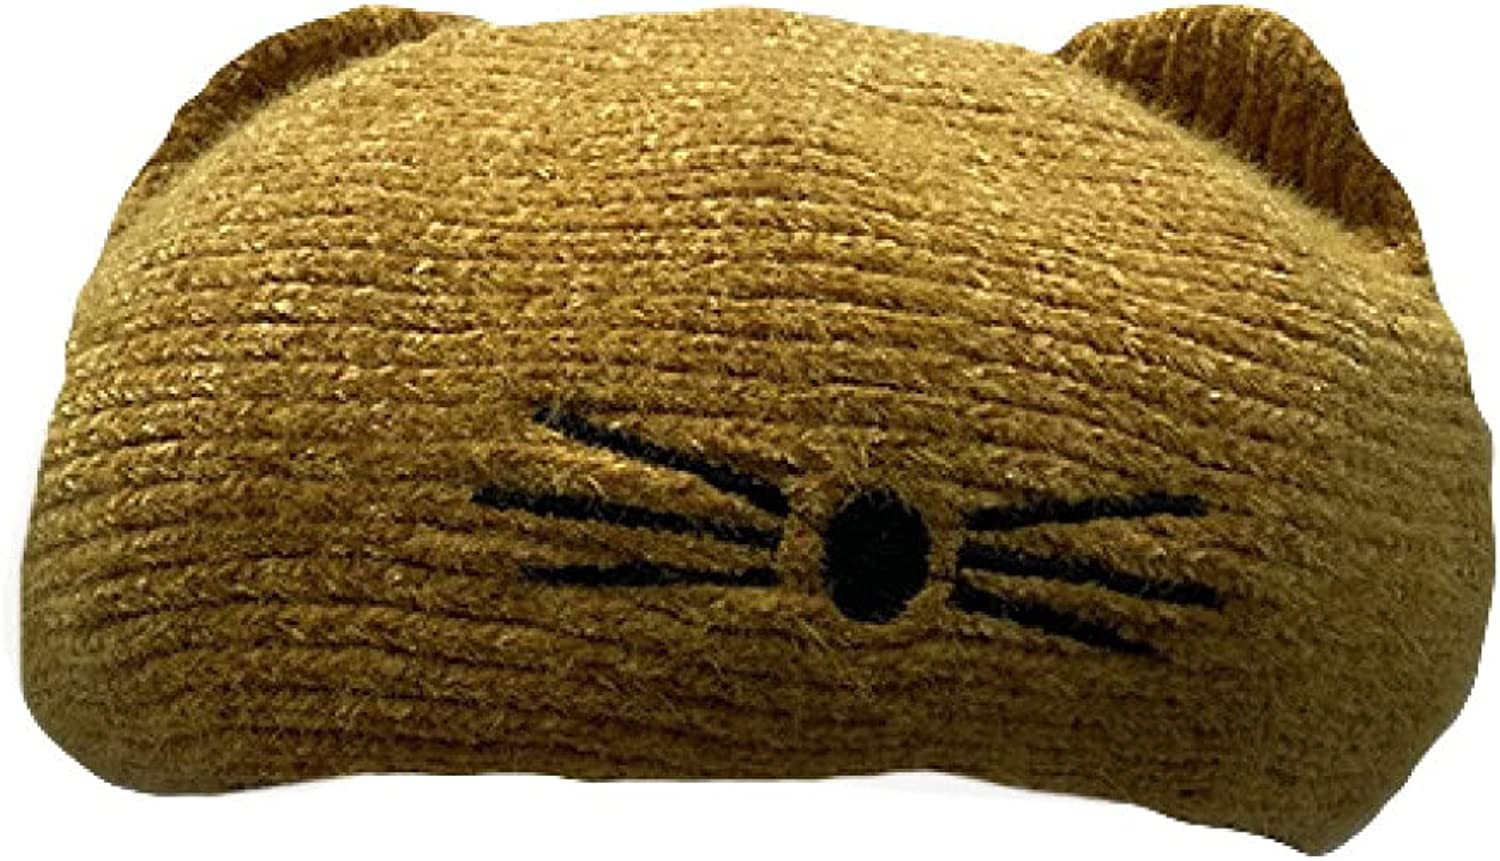 Knitted Beret Hats for Women Be super welcome Autumn Winter Korean Cap Japanese S Branded goods